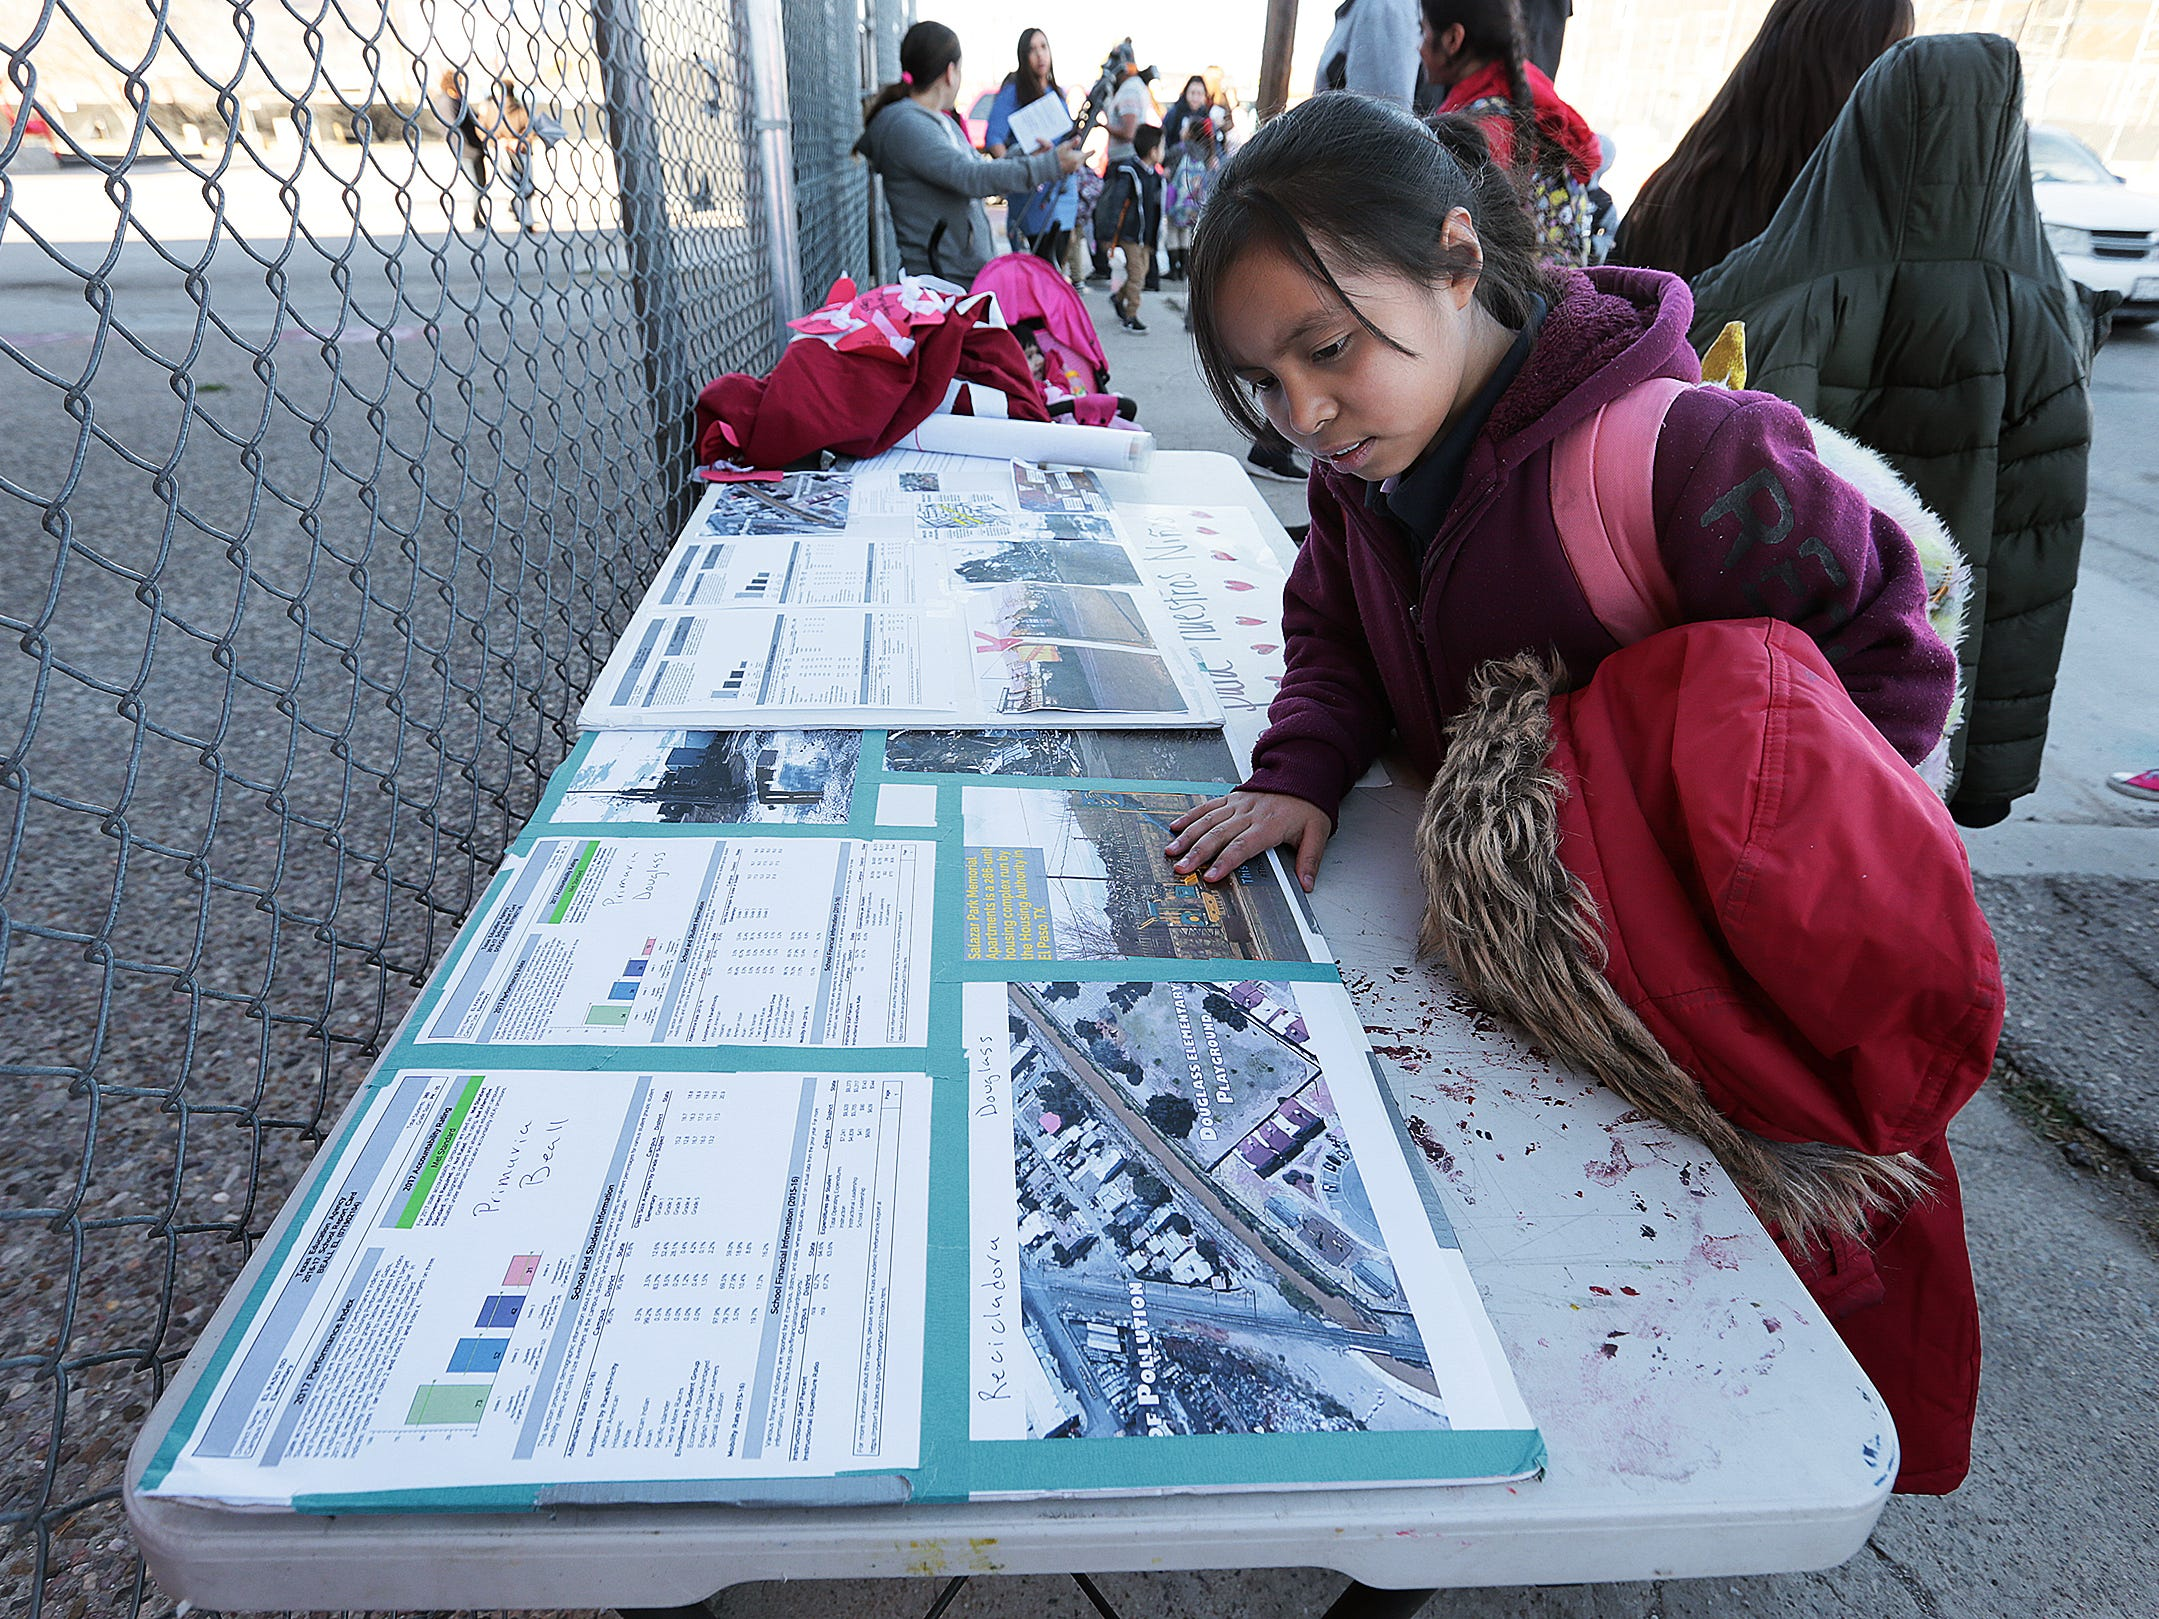 A Beall Elementary School student looks over display boards showing the location of her new school adjacent to a recycling facility. The EPISD Board voted Tuesday to close the school and three others.